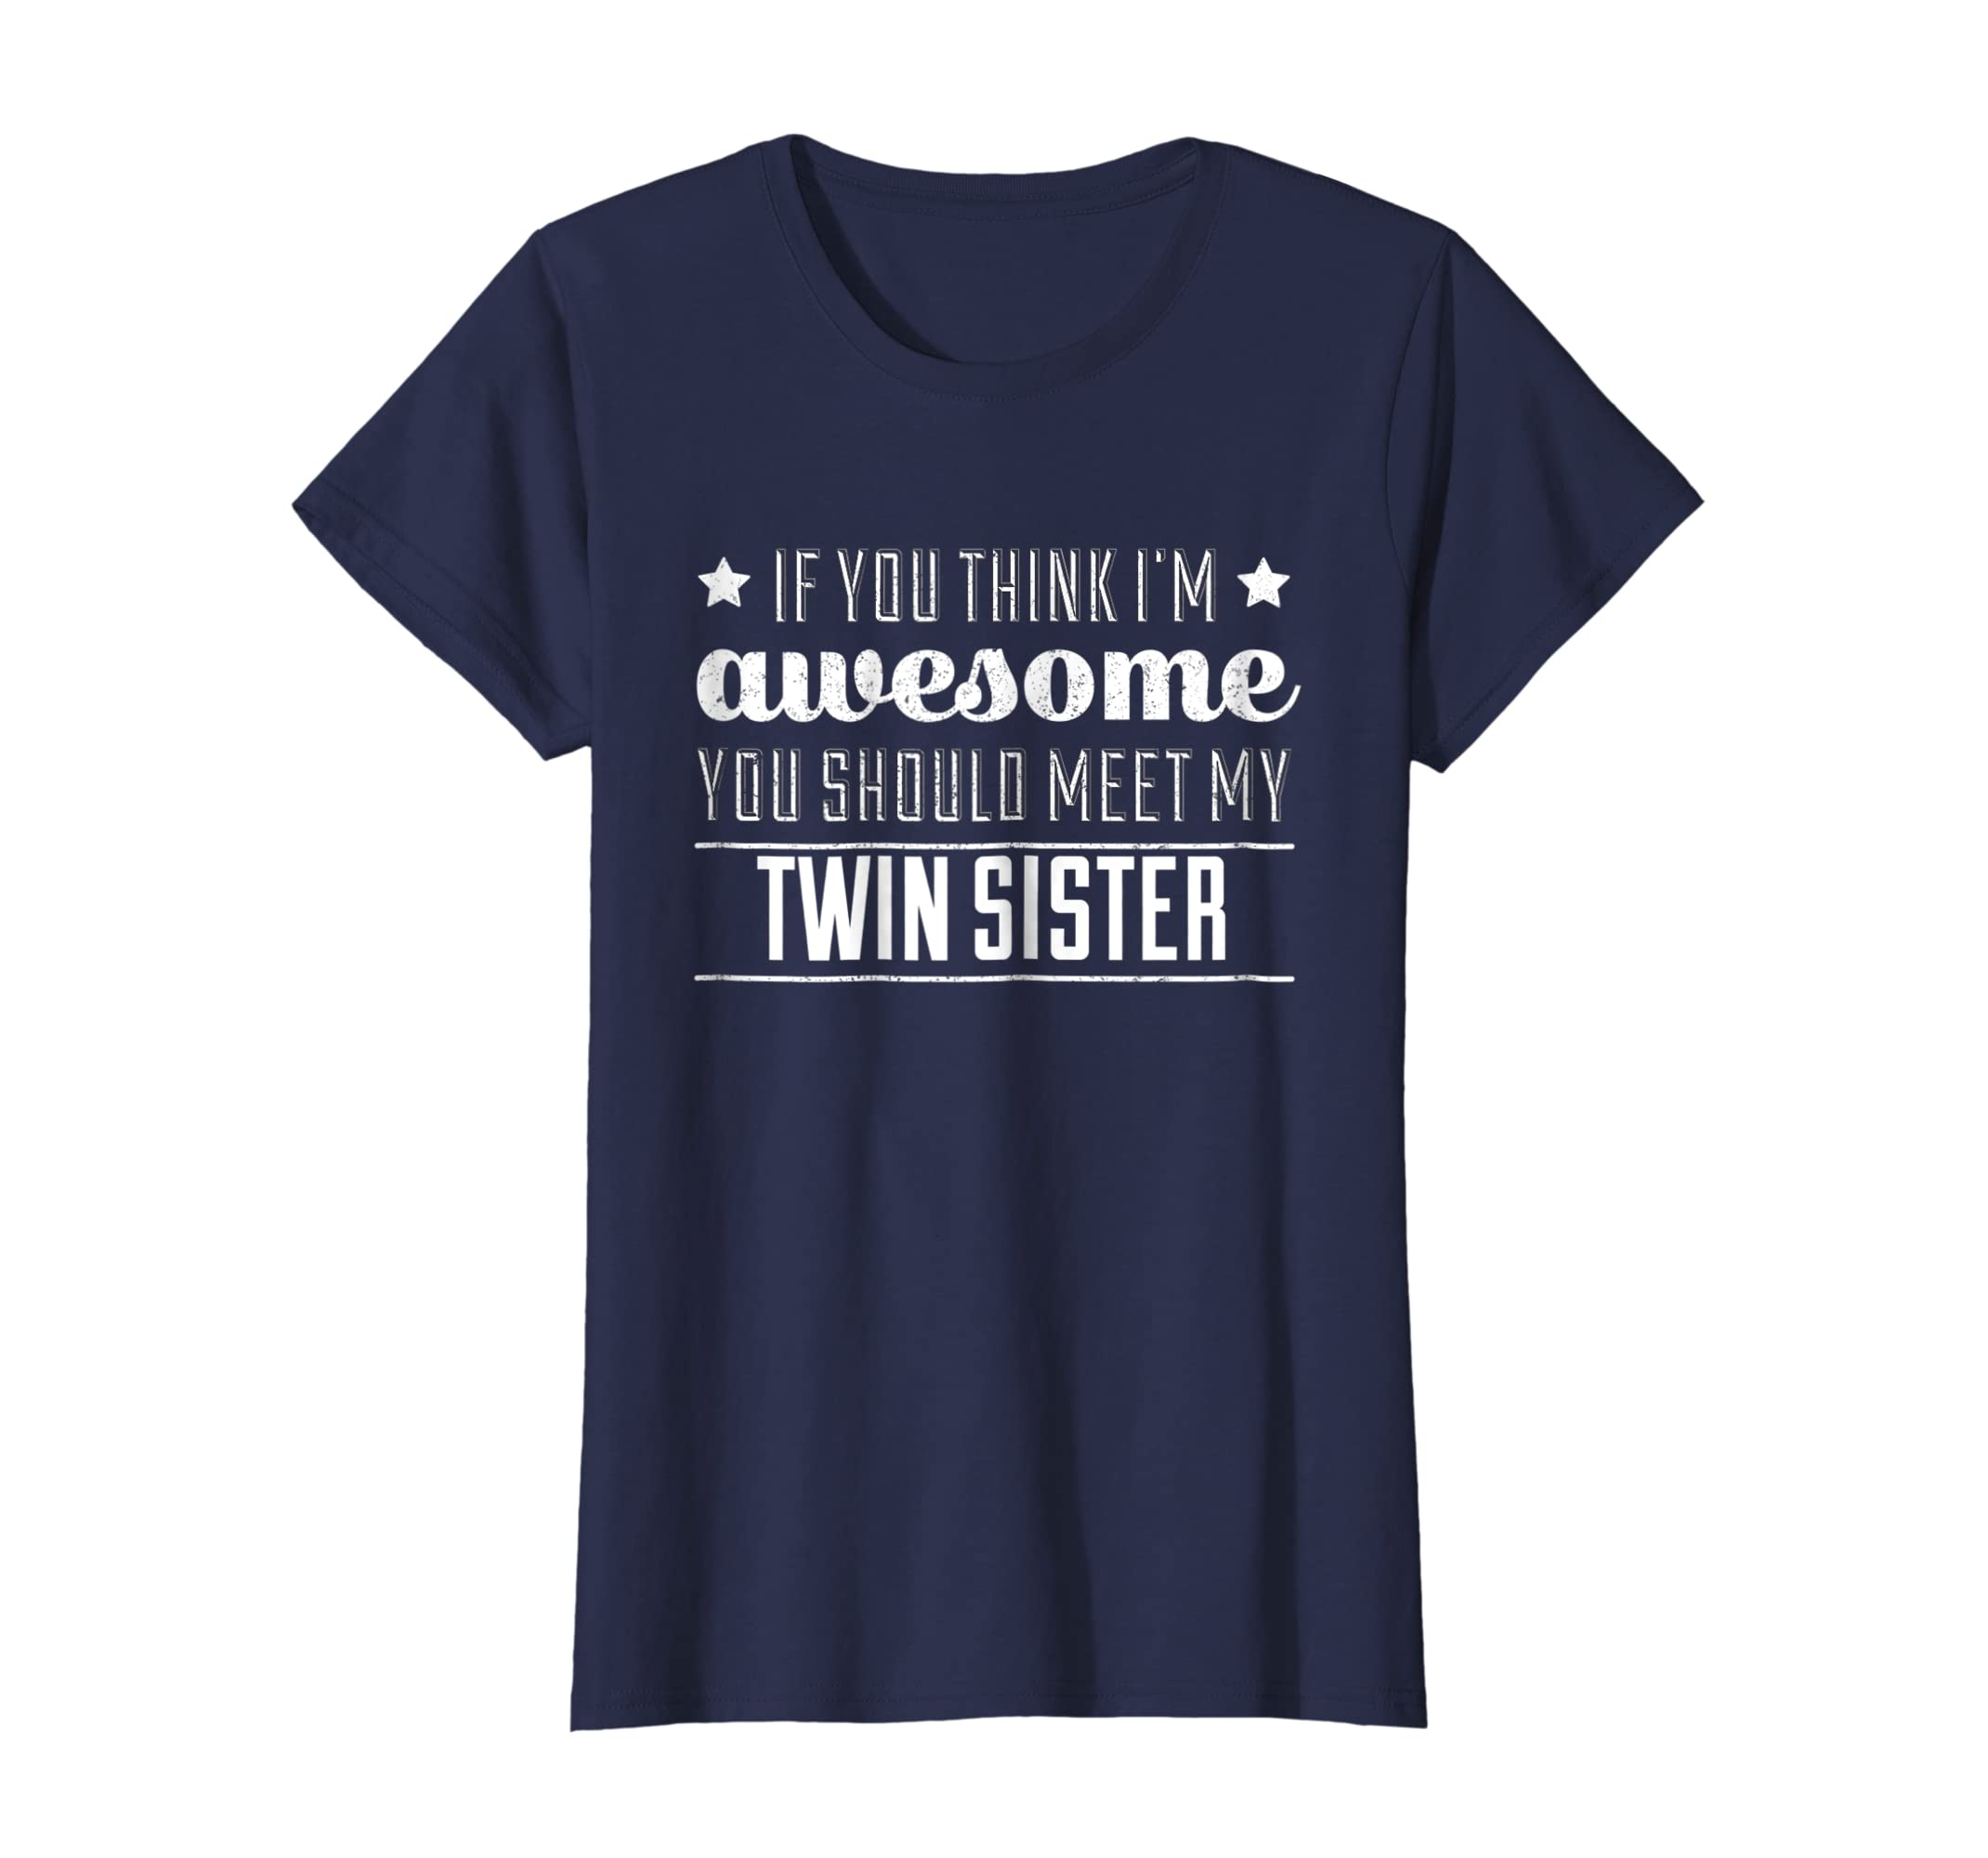 b60034485 Amazon.com: If You Think I'm Awesome Meet My Twin Sister Funny T Shirt:  Clothing